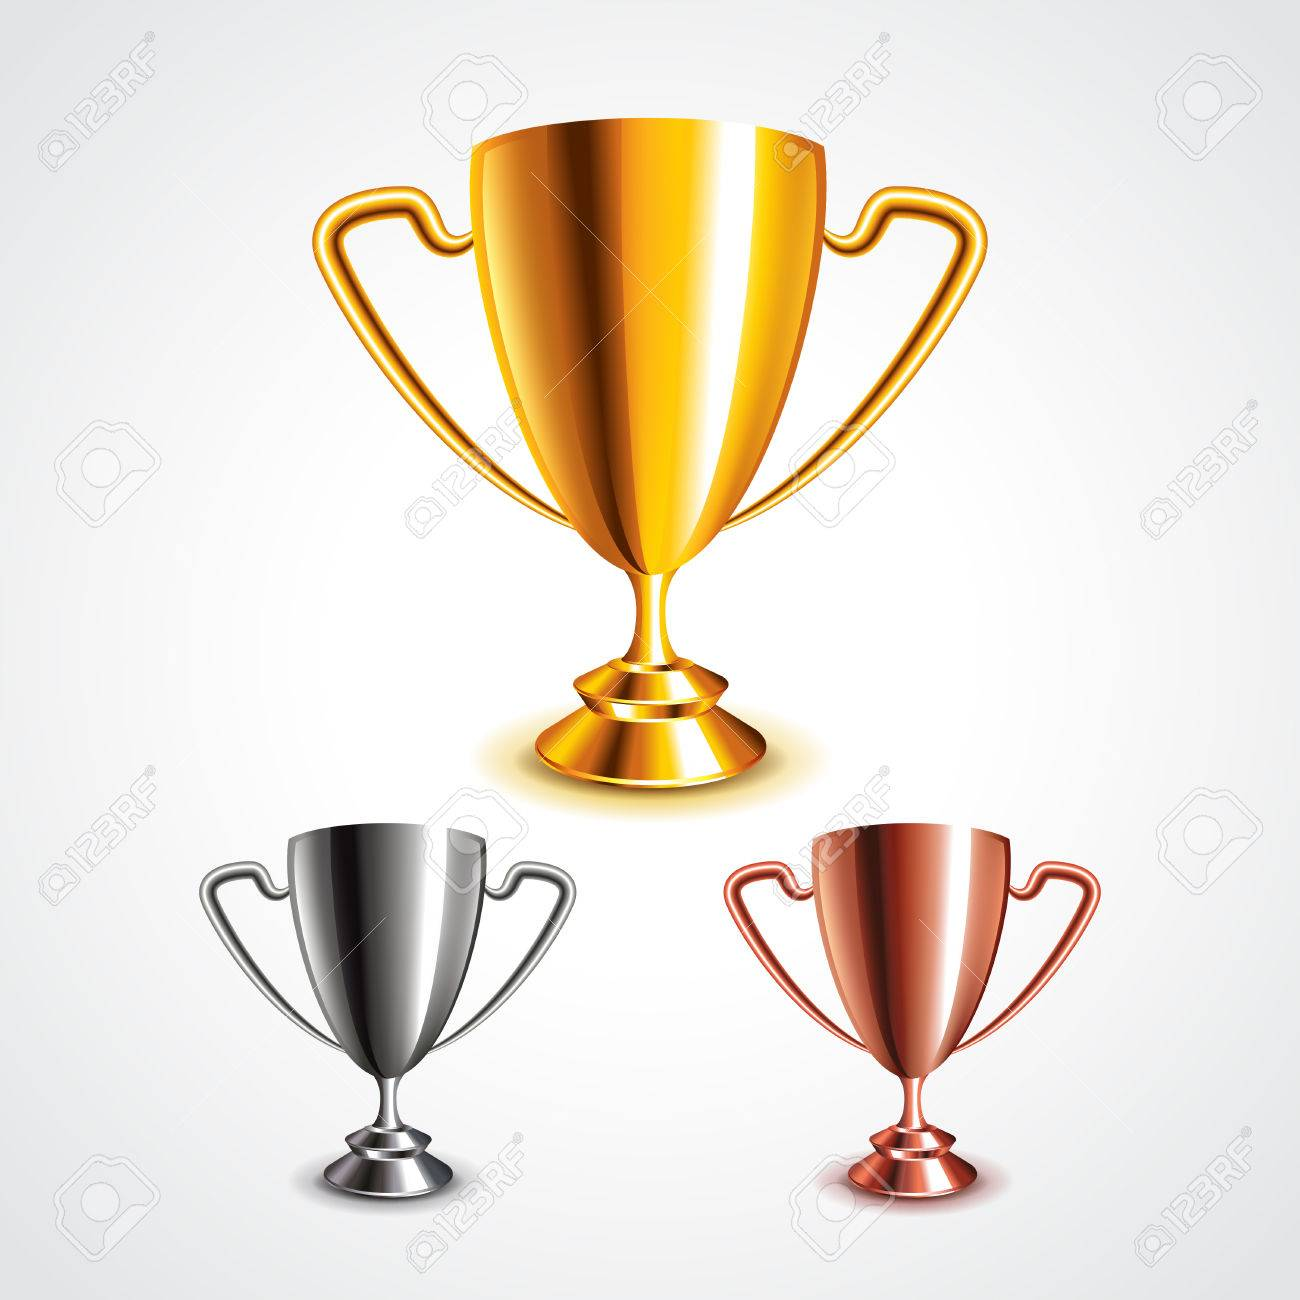 Golden, silver and bronze trophy cups photo realistic vector set - 43131004